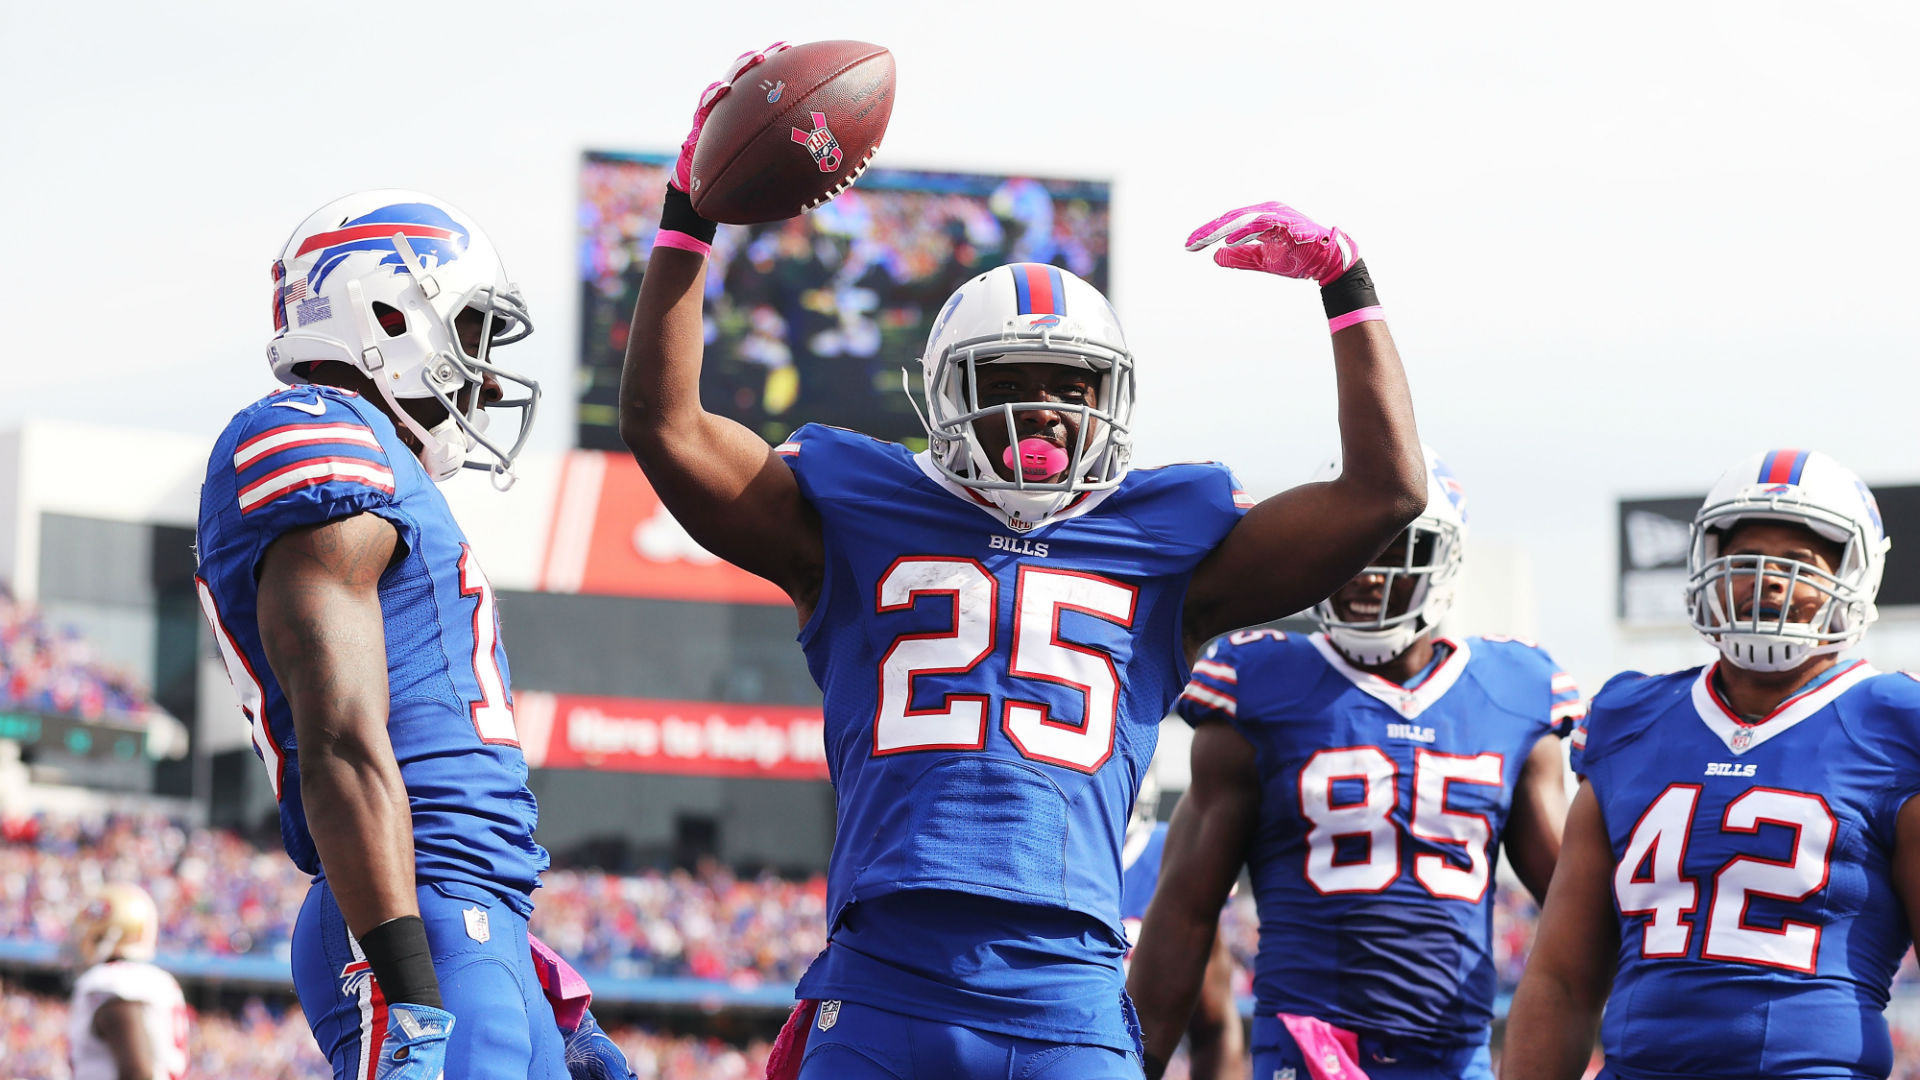 LeSean McCoy scares Bills fans with Buffalo was so special tweet